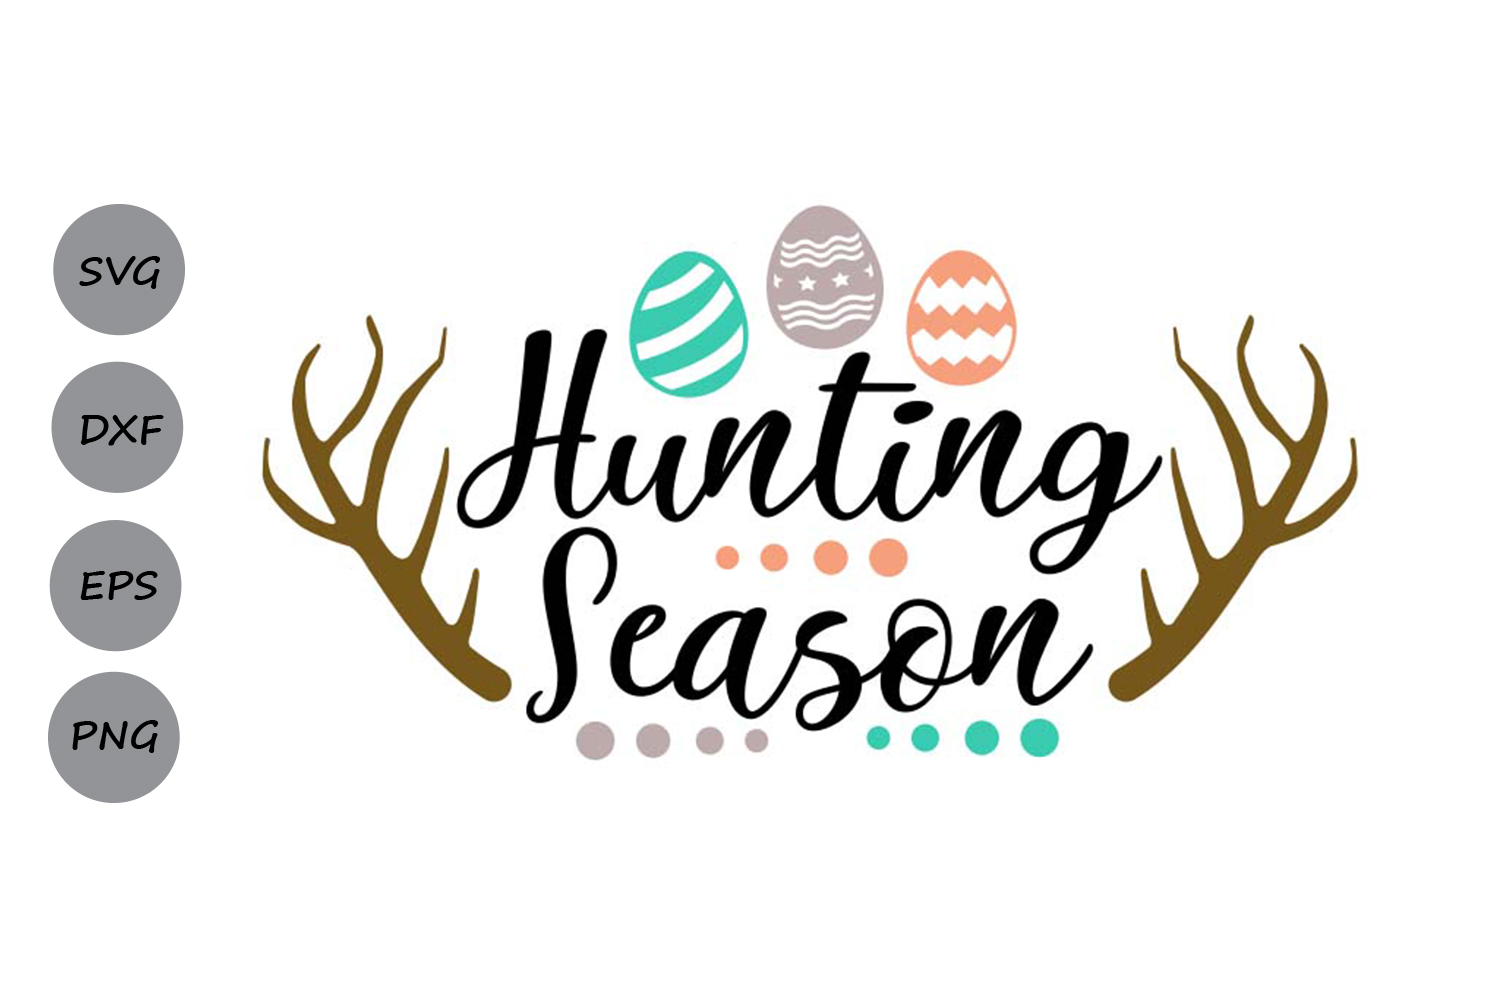 Hunting Season Svg, Easter Svg, Easter Eggs Svg, Spring Svg. example image 1